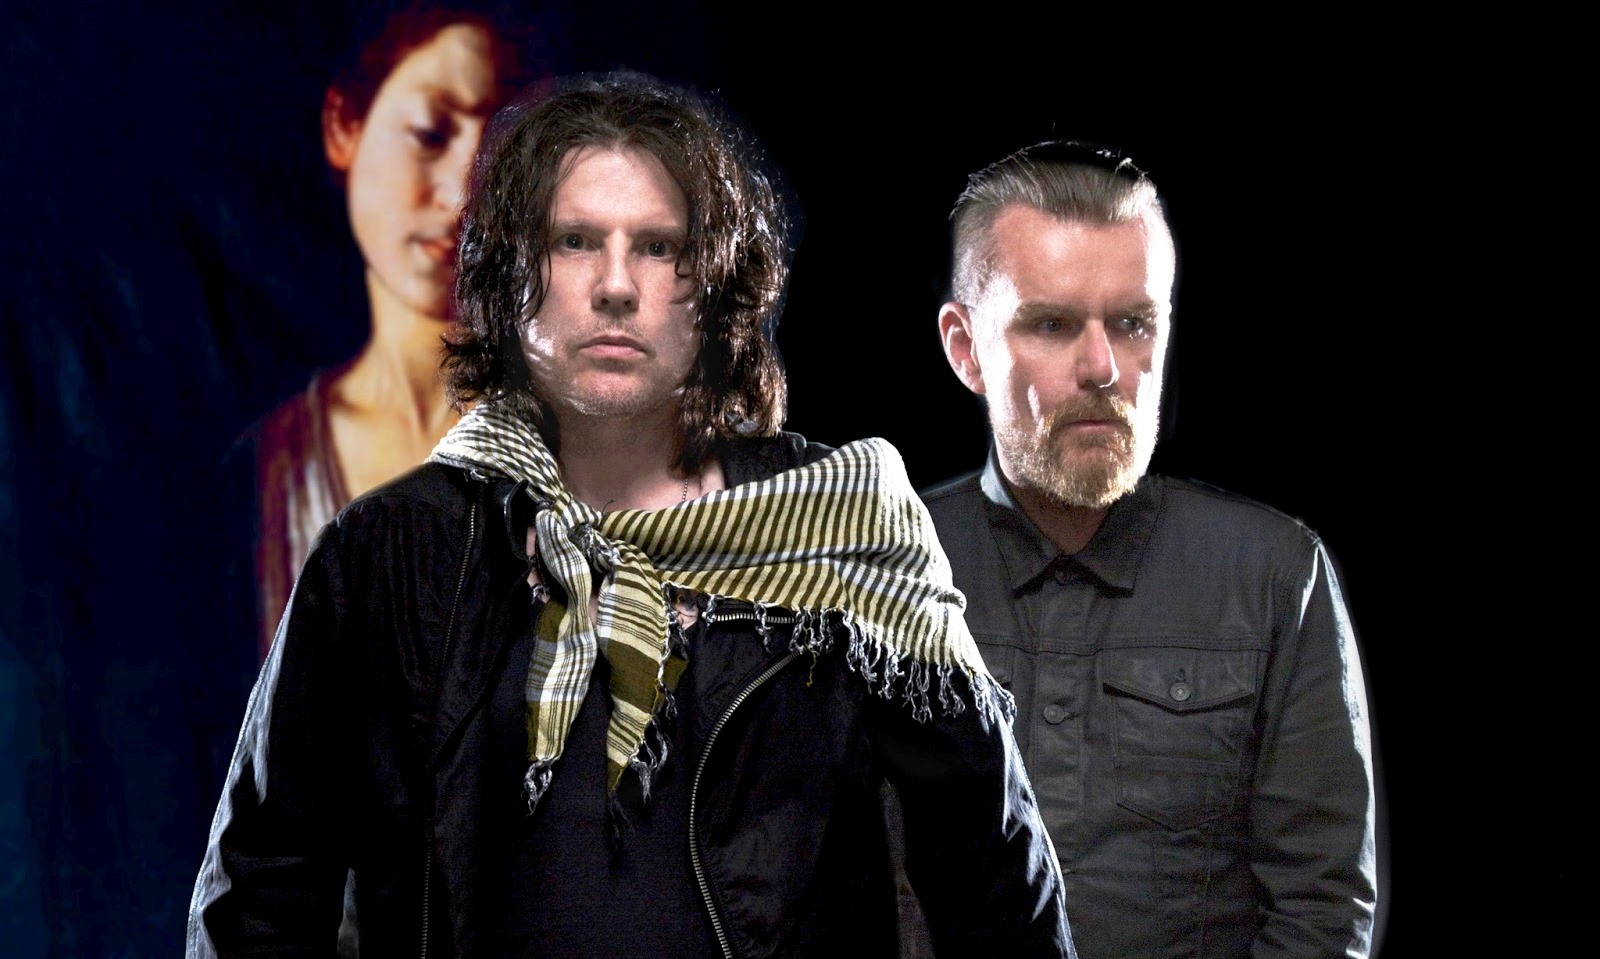 Otro debut en Chile: The Cult confirmó su primer concierto en Chile